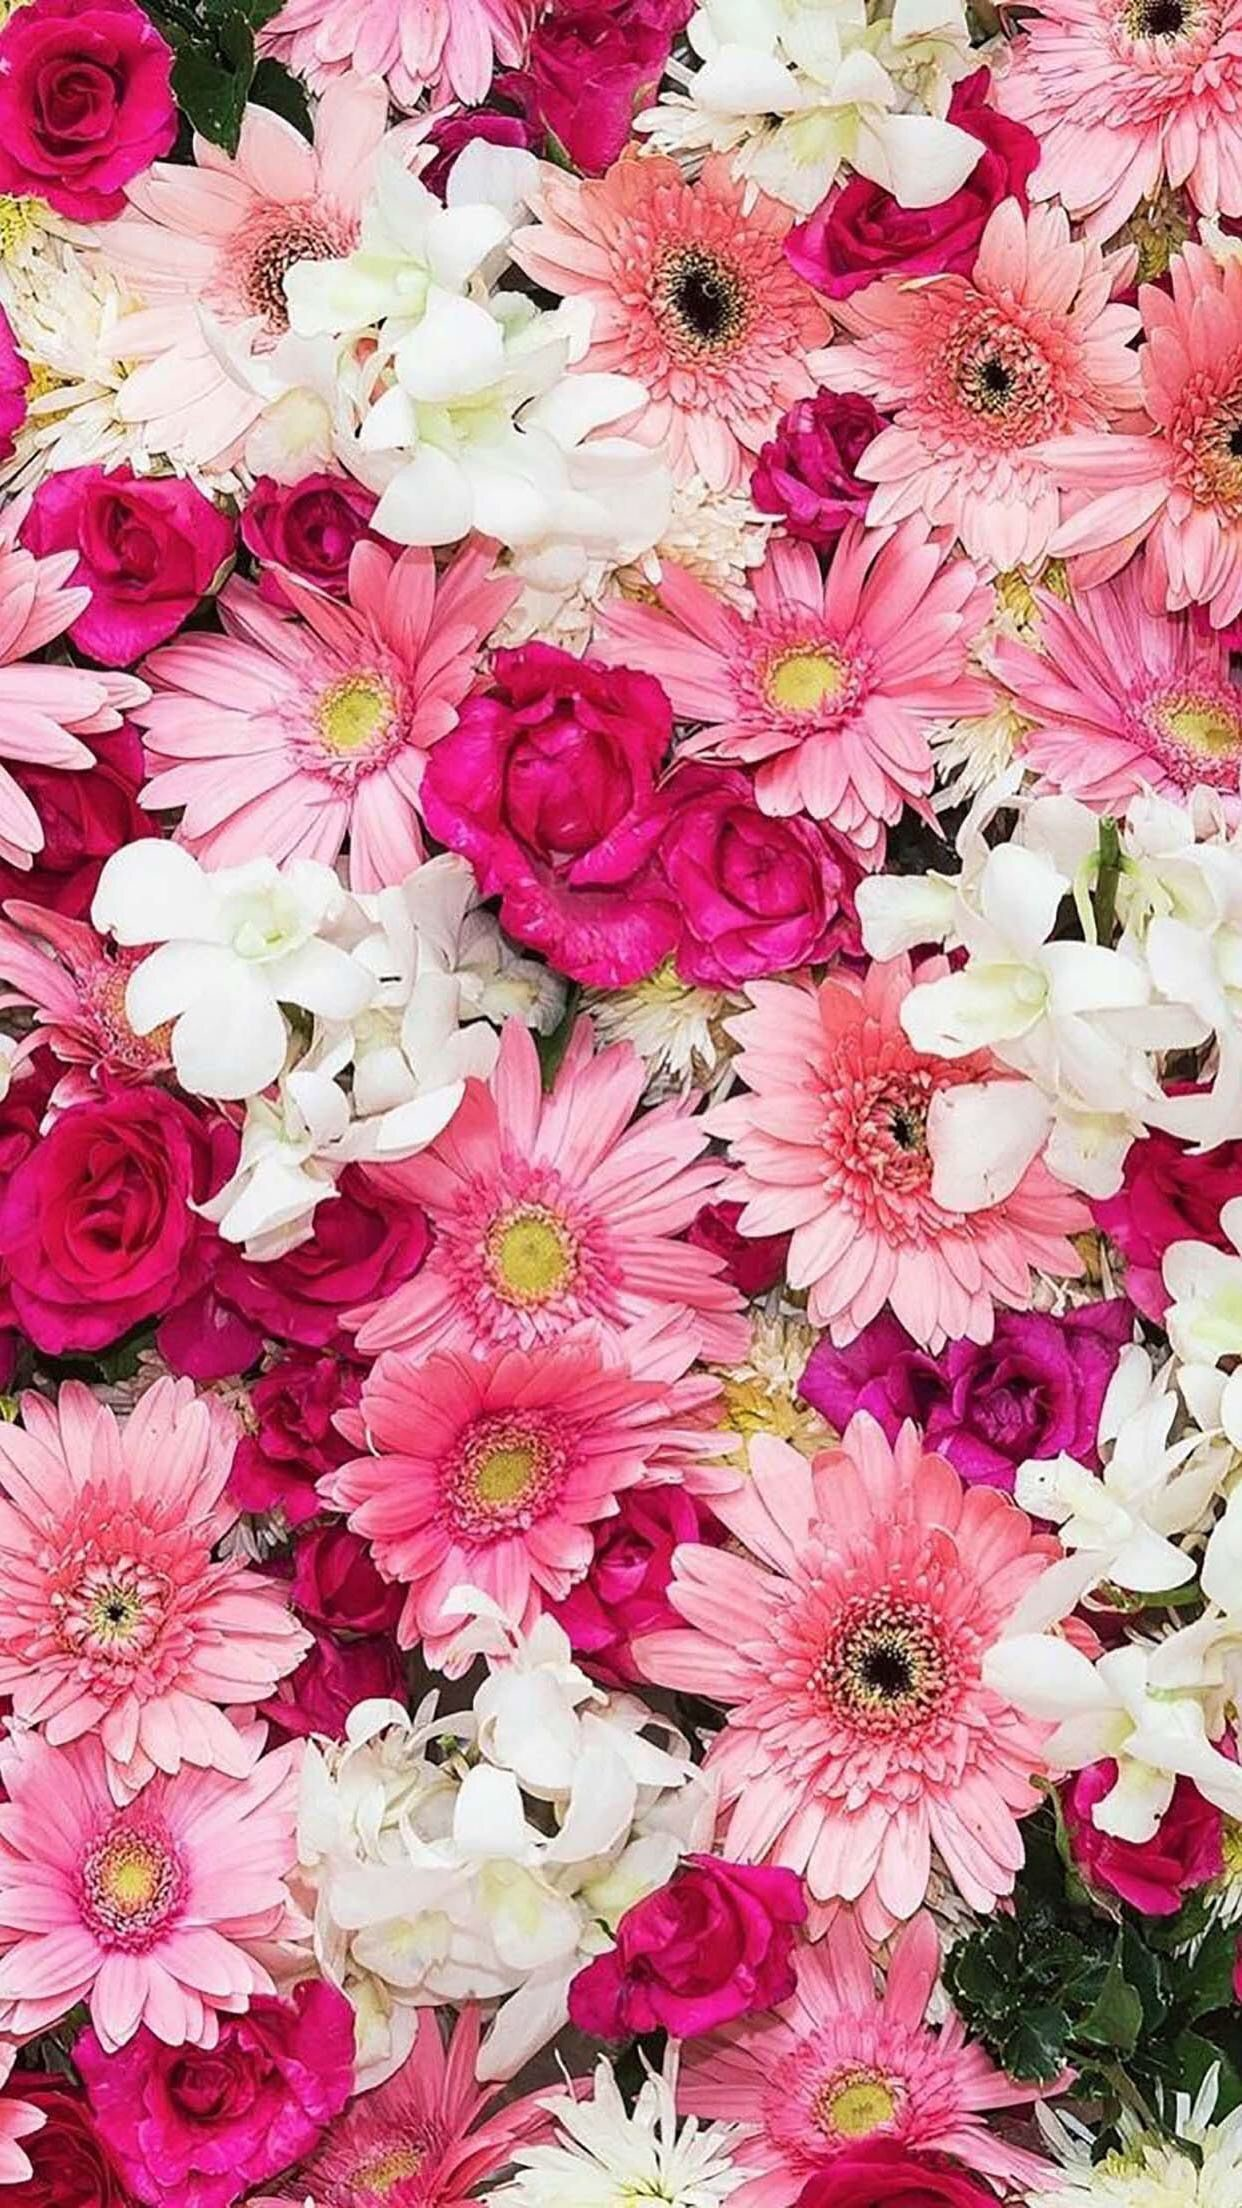 Cute Pink Flowers Wallpaper 62 Images